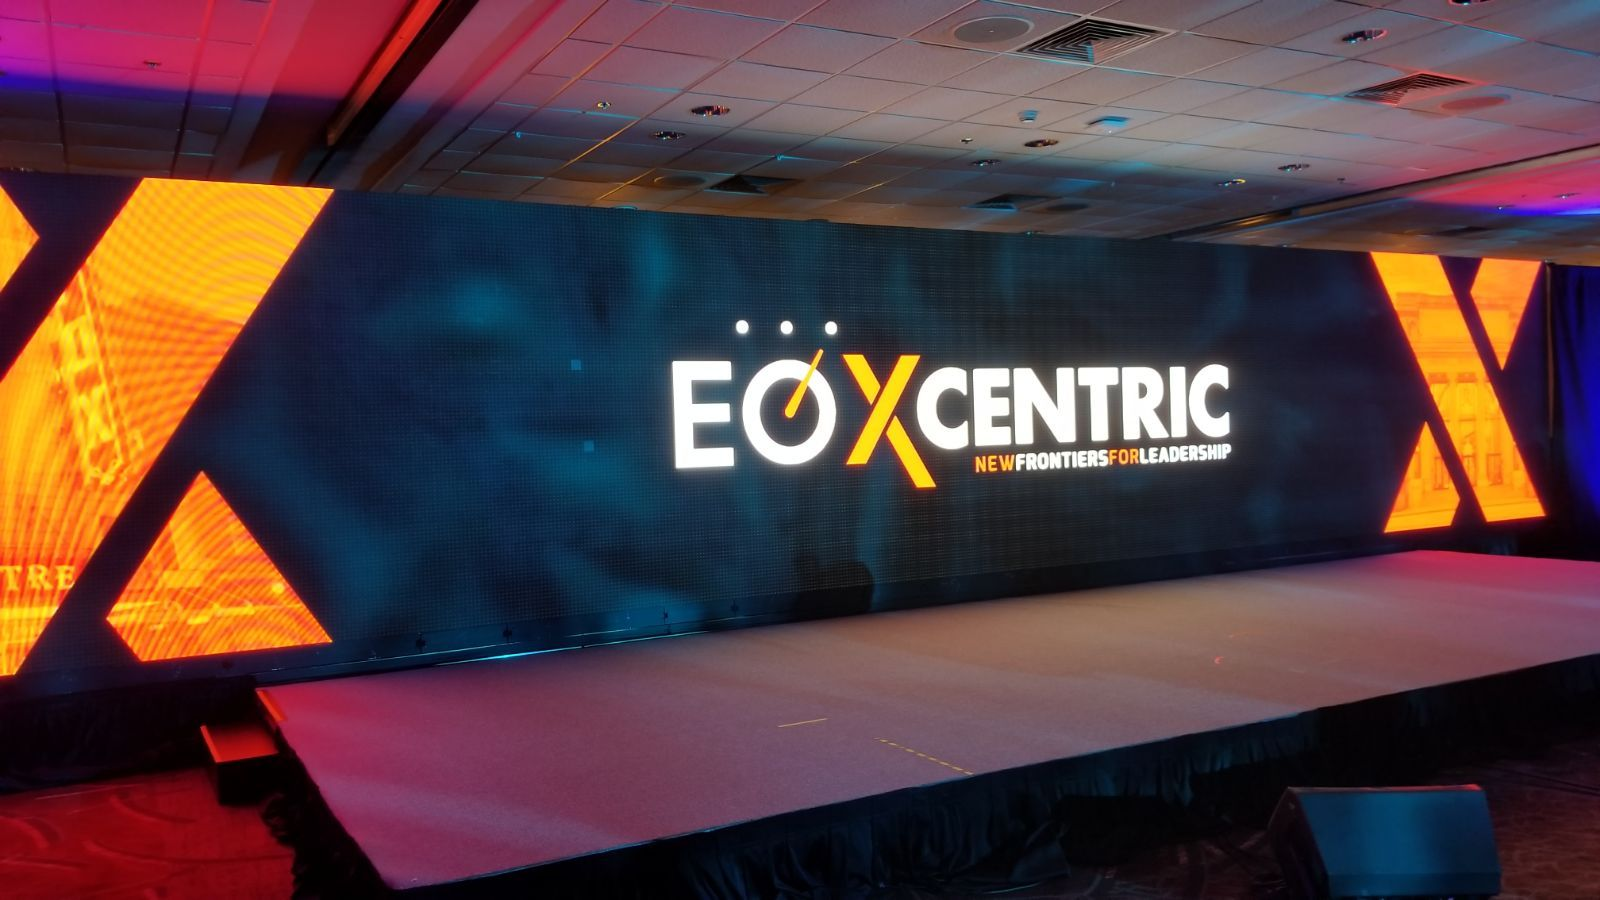 Large LED video wall on corporate conference stage